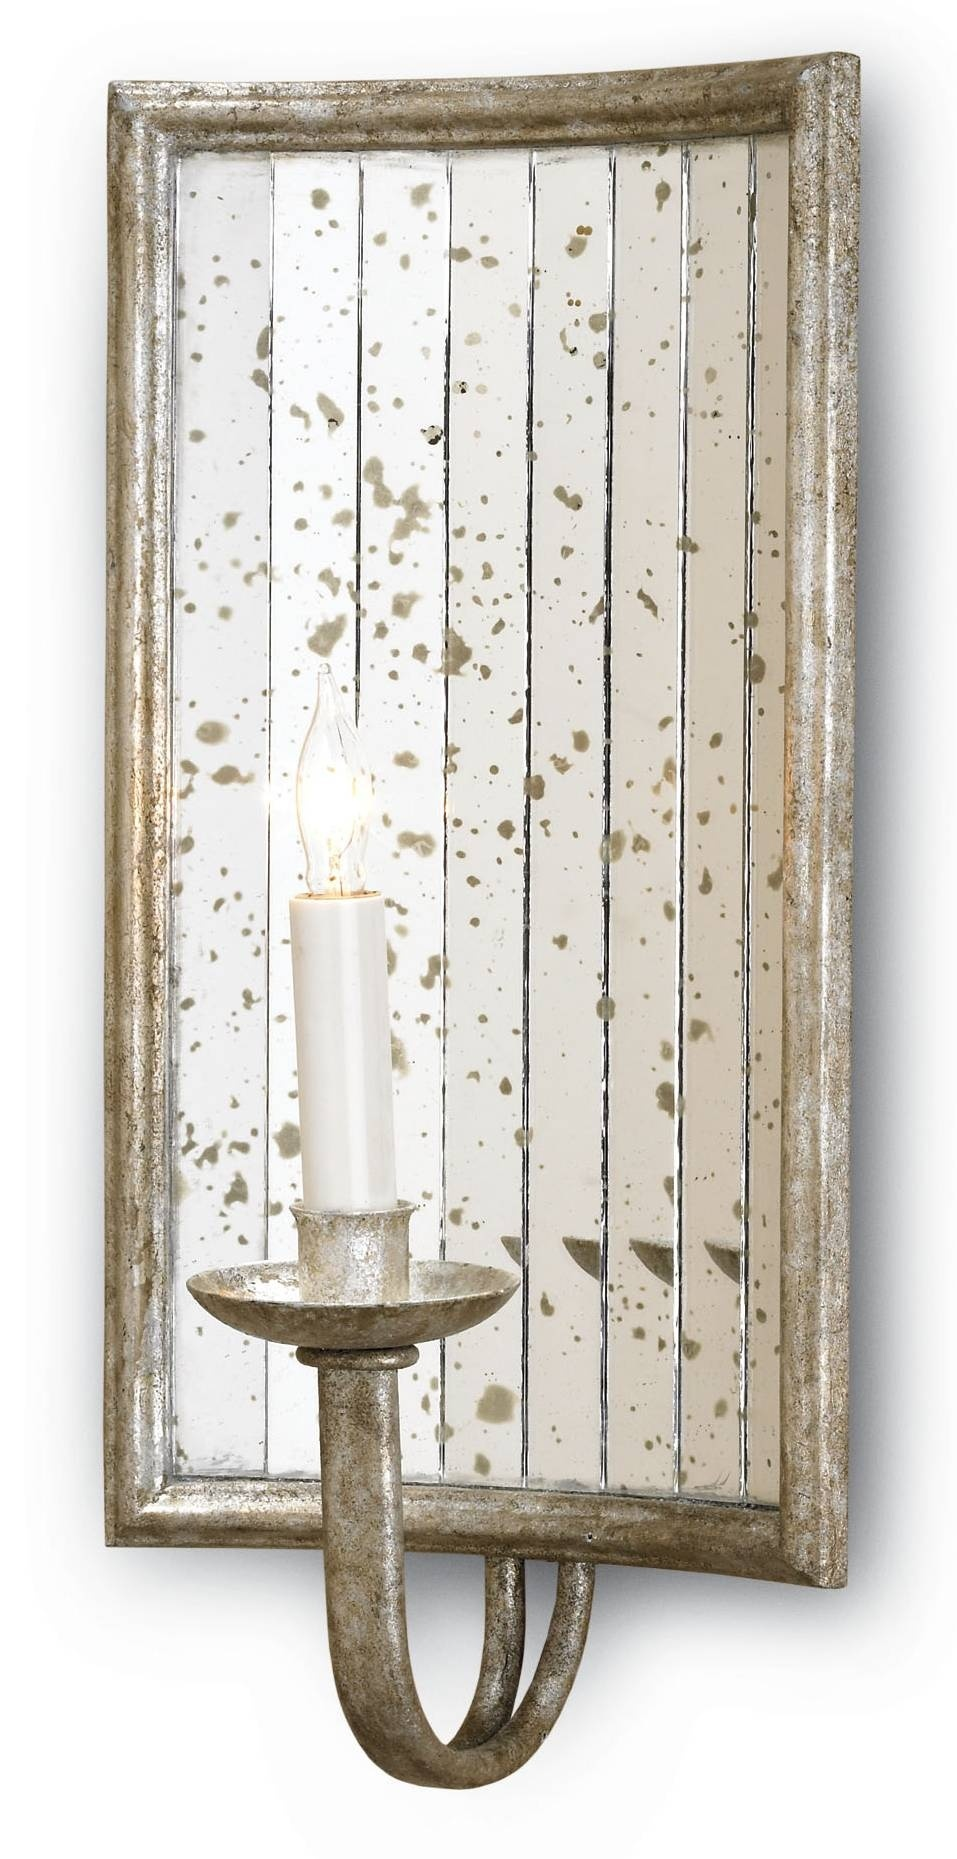 Currey u0026 Company 5405 Twilight Wall Sconce In Harlow Silver Leaf/Antique Mirror  sc 1 st  Foundry Lighting : antique mirror sconce - www.canuckmediamonitor.org